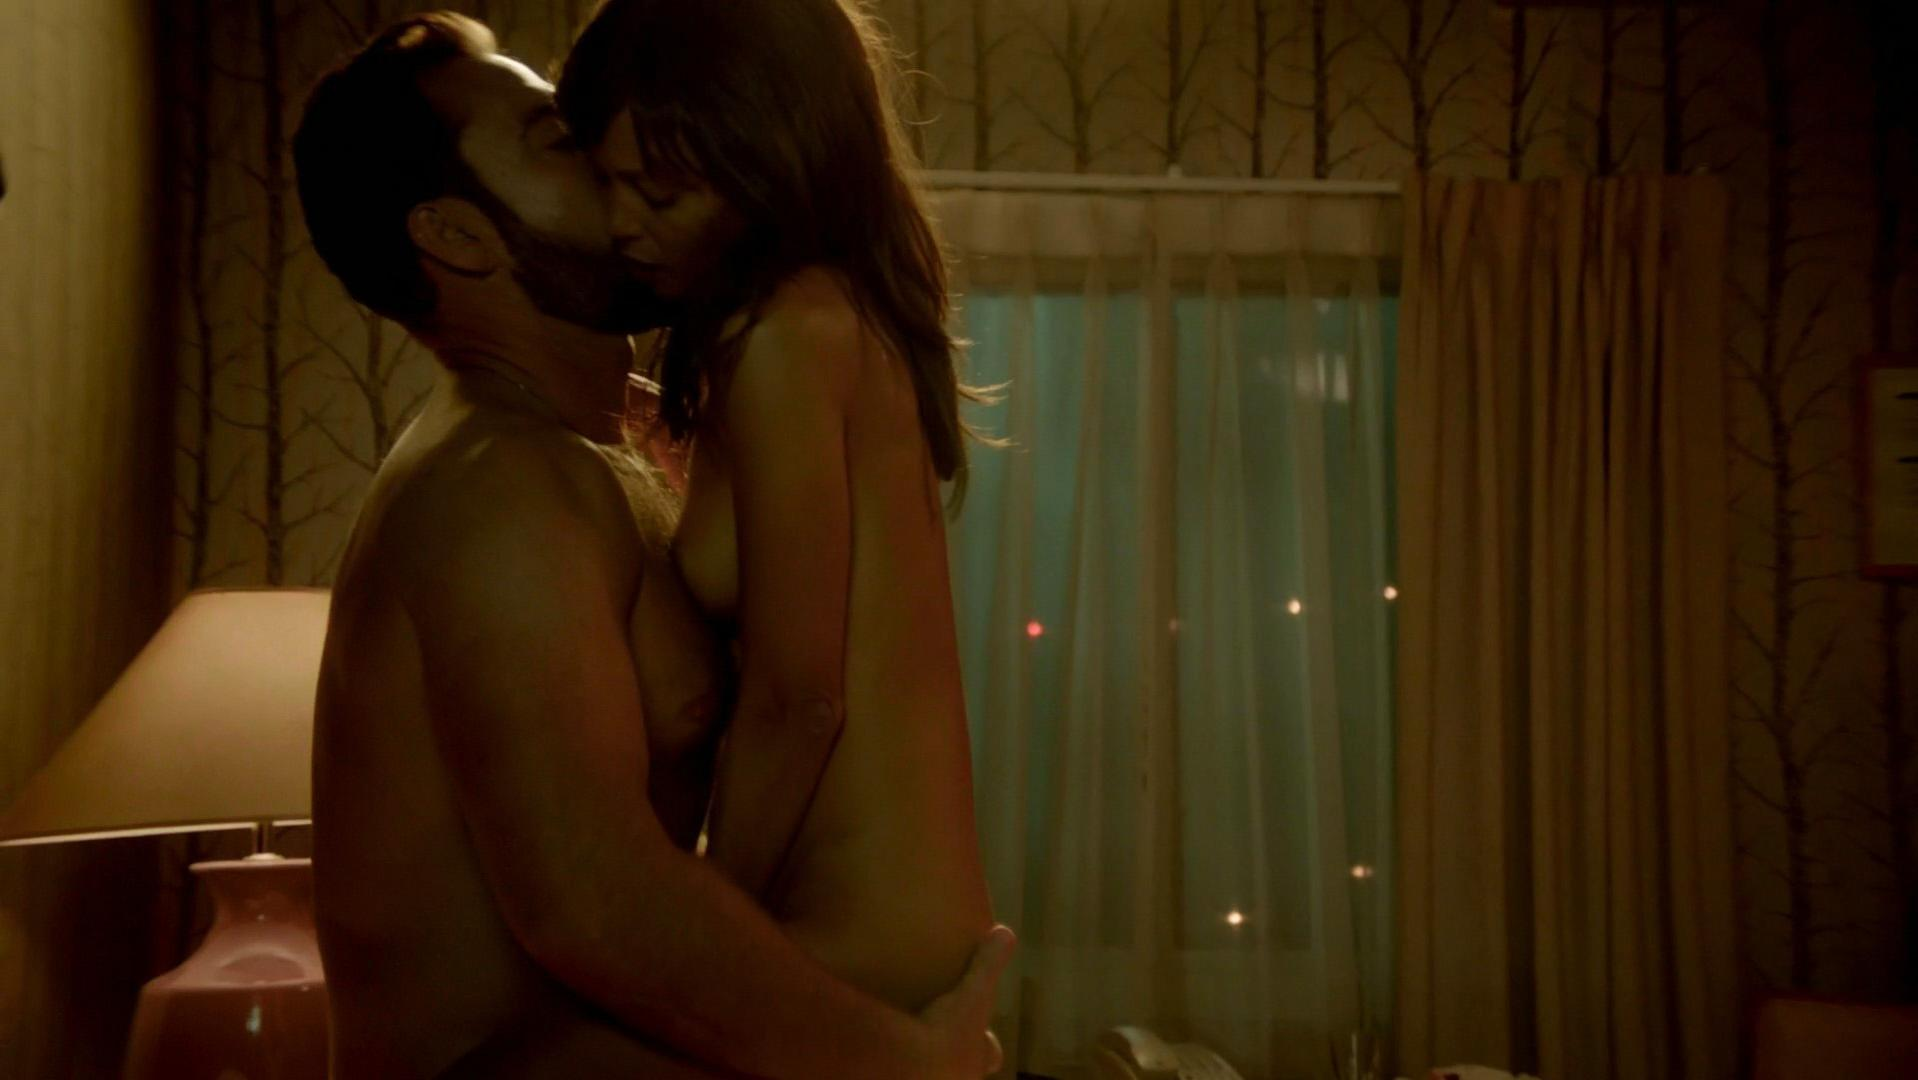 Thandie Newton nude - Rogue s01e05 (2013)